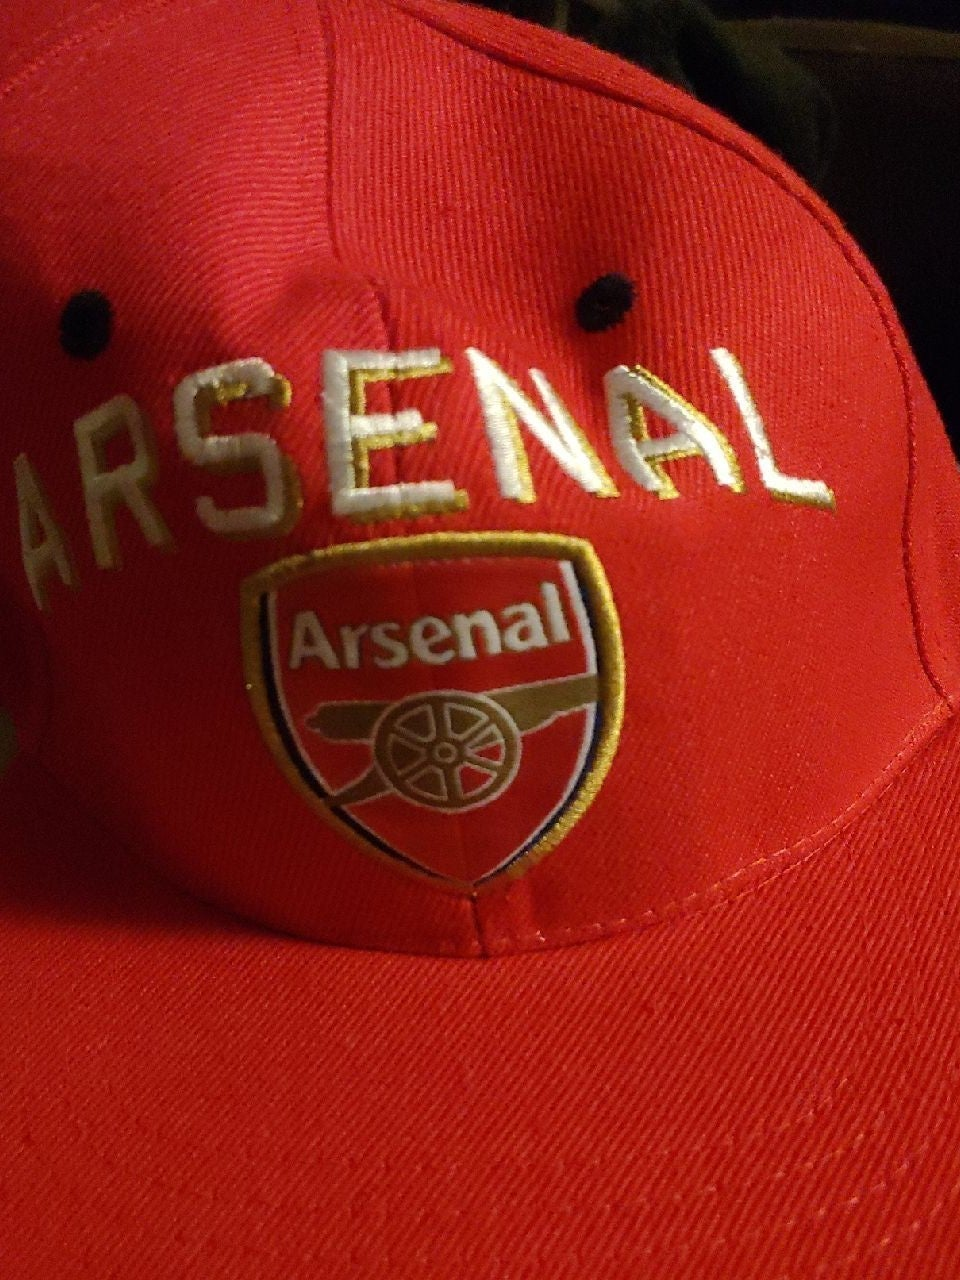 ARSENAL one size fits all adjustable hat